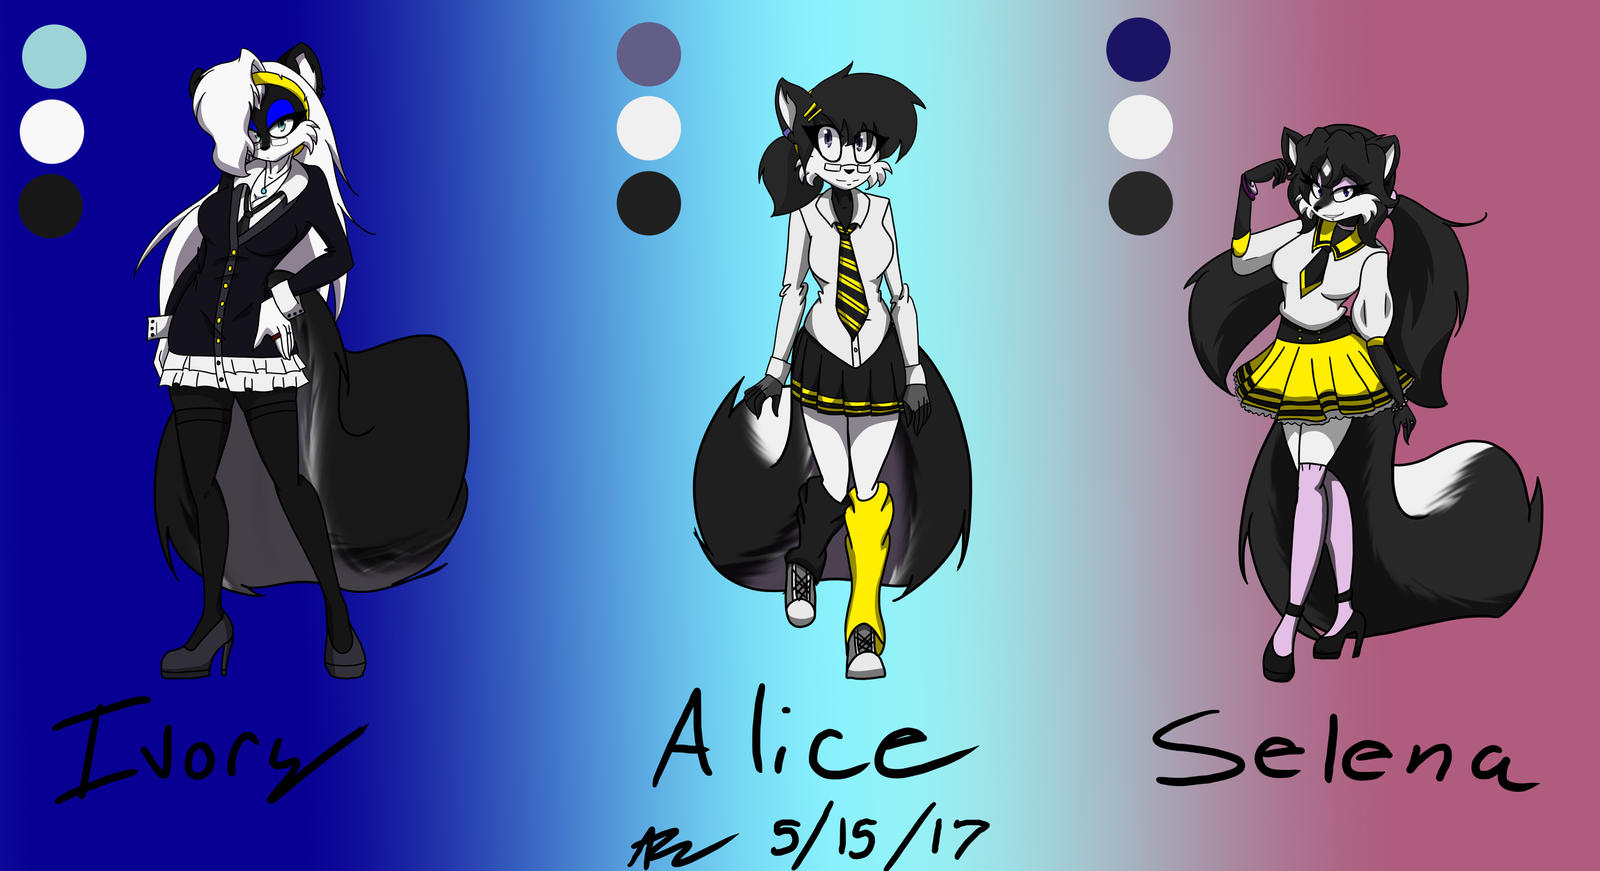 Animated Alice Angle Porn ivory, selena, and alice the skunksdanithedealer on